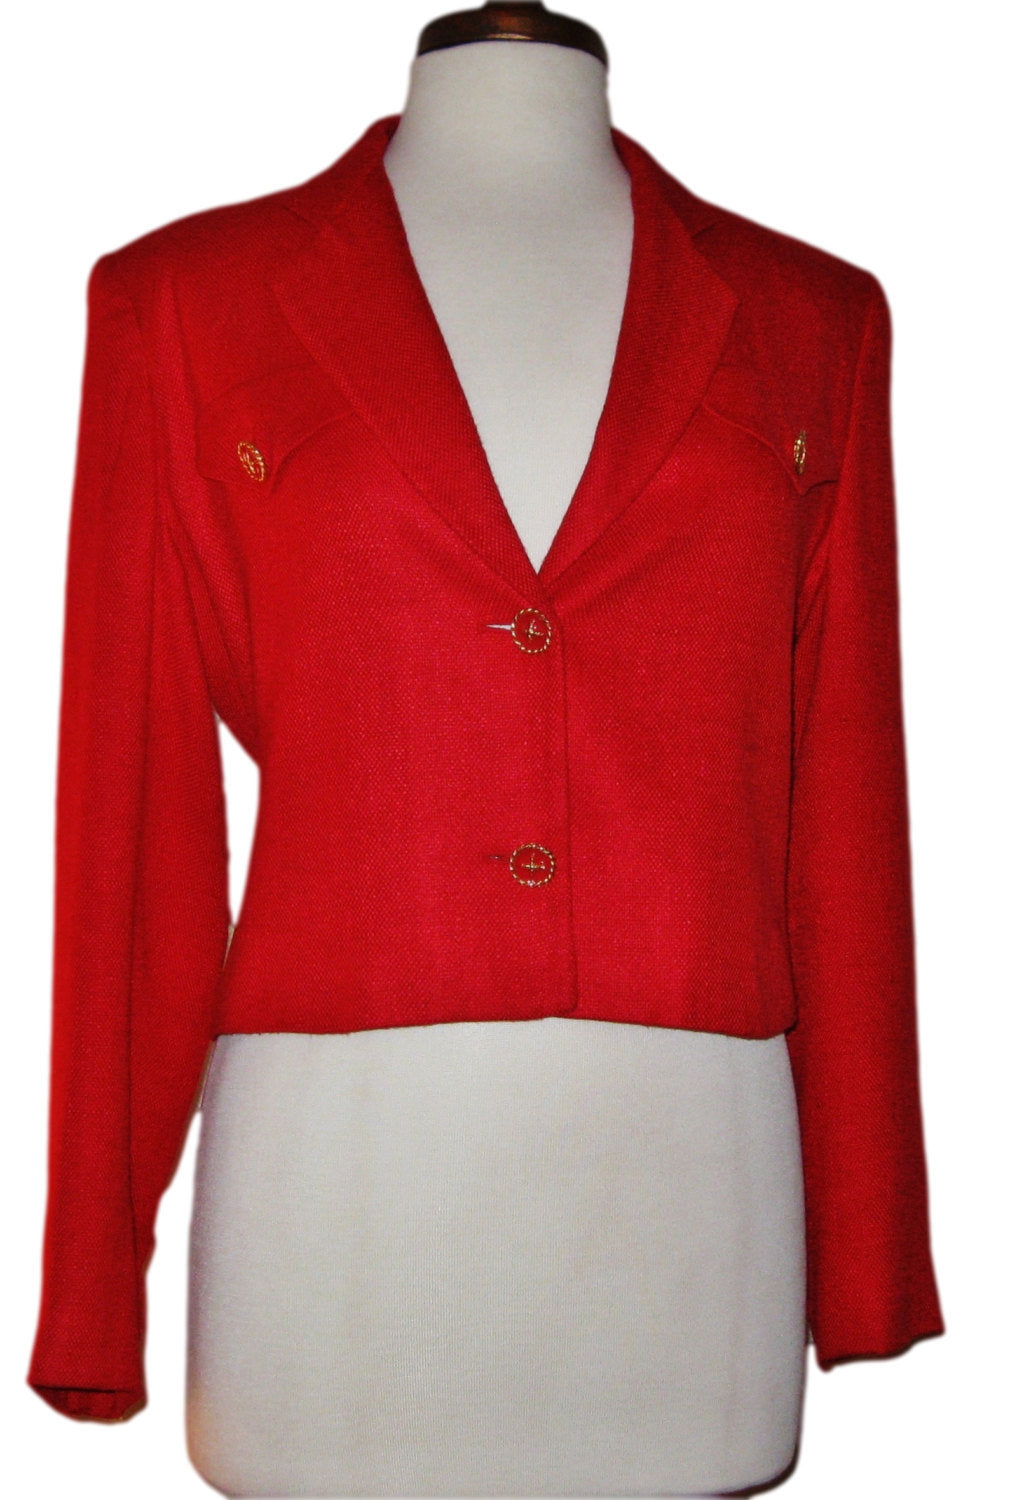 80s Red Linen Blend Military Crop Jacket, Blazer, lgr label - Ysabel Vintage Online